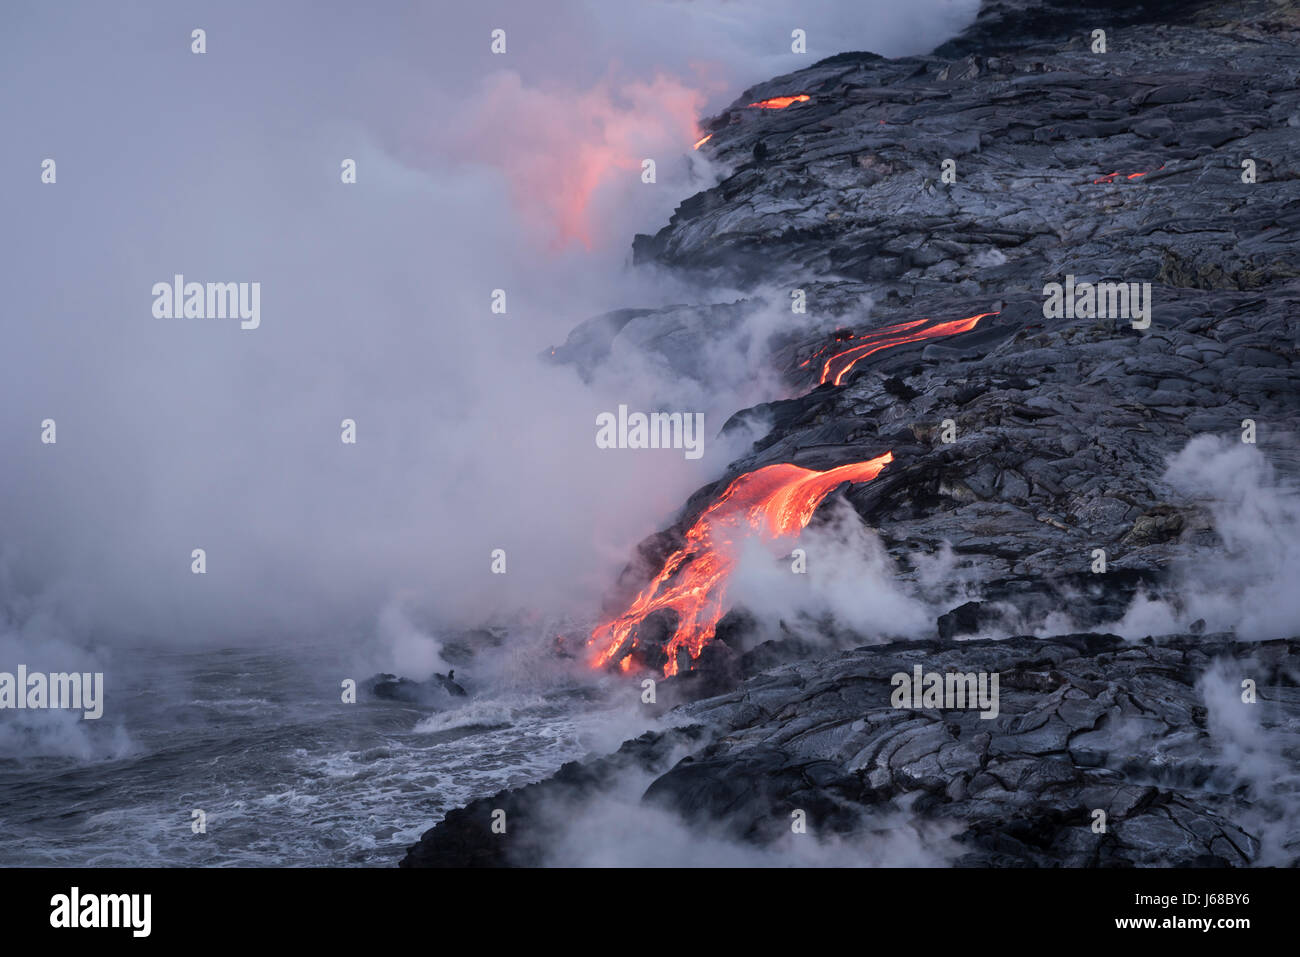 Lava from Pu'u O'o eruption entering the ocean; Hawaii Volcanoes National Park, Island of Hawaii. - Stock Image